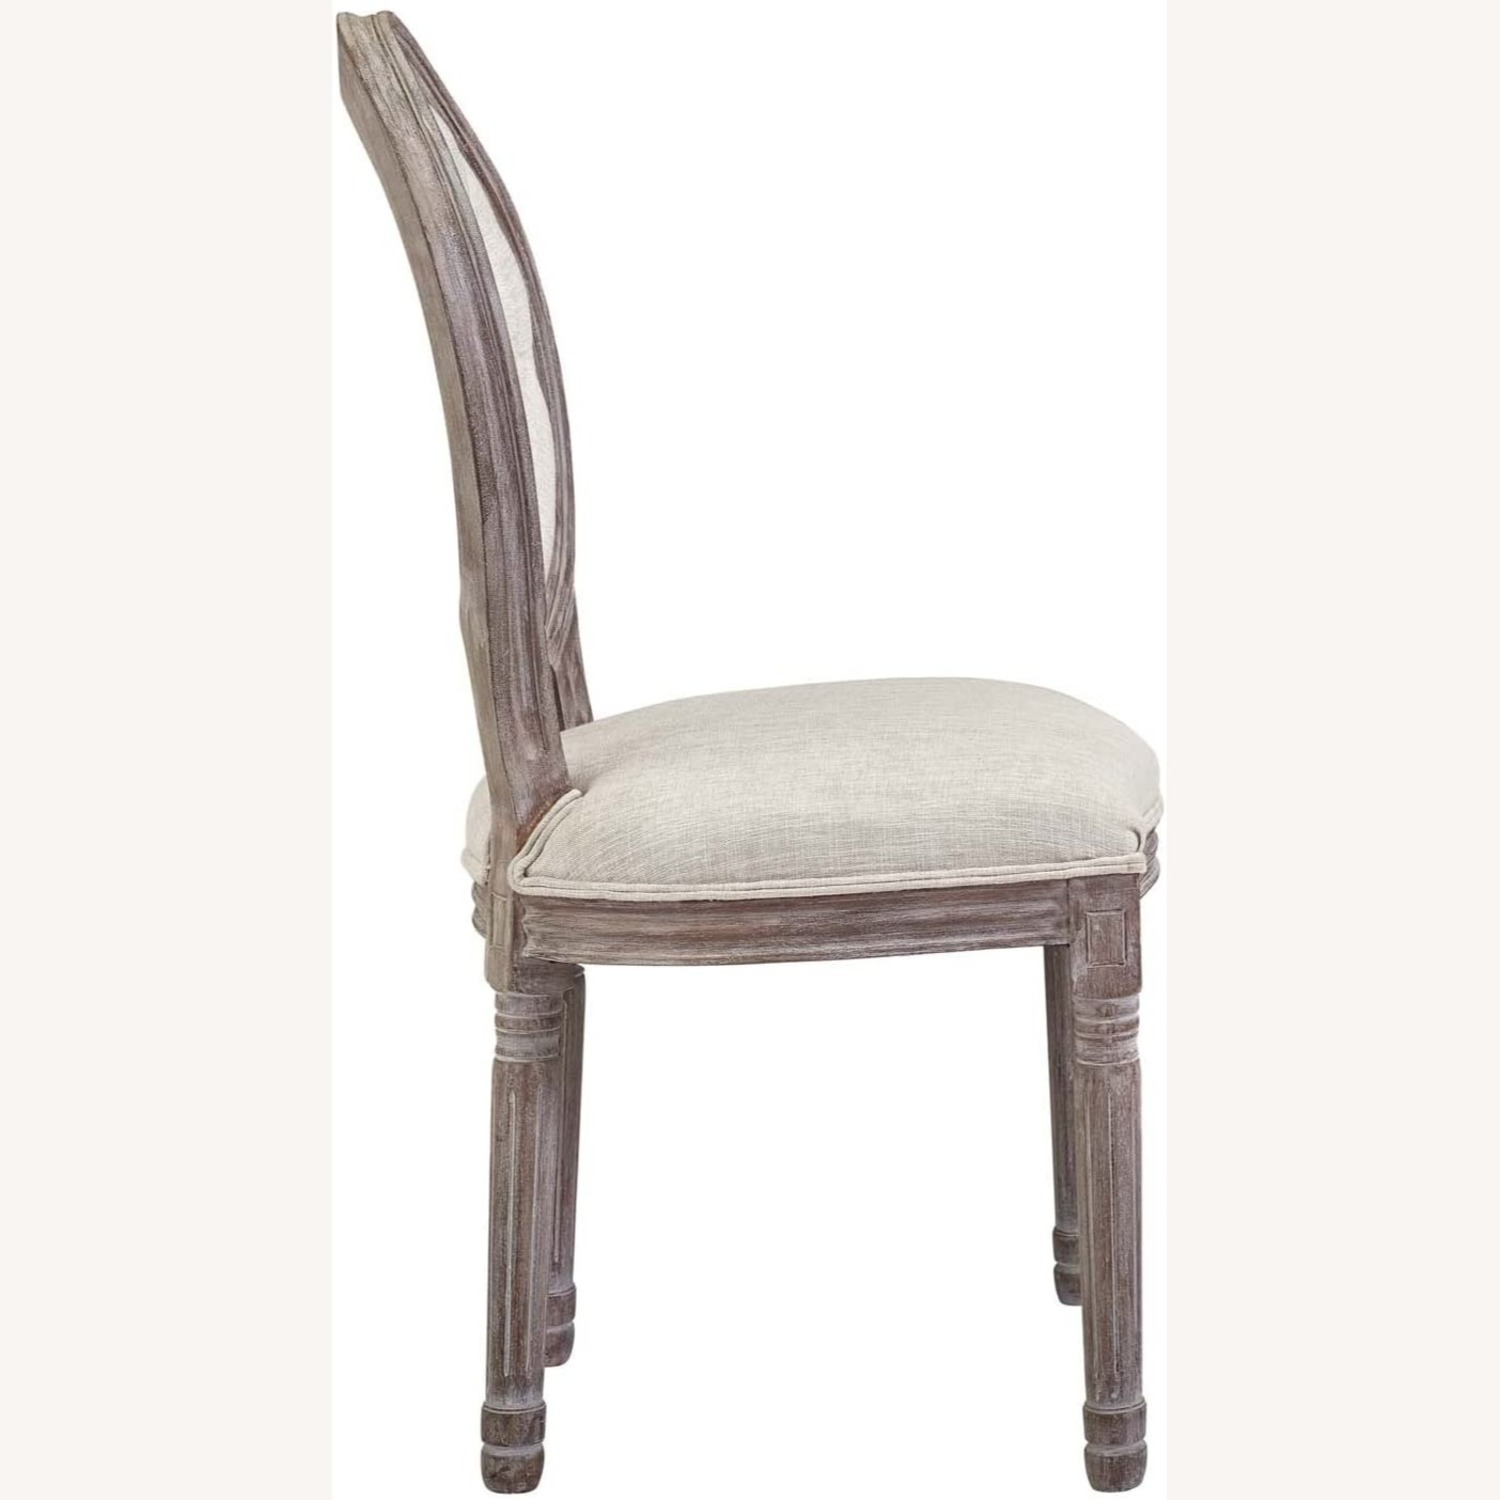 Traditional Dining Chair In Beige Fabric Finish - image-1